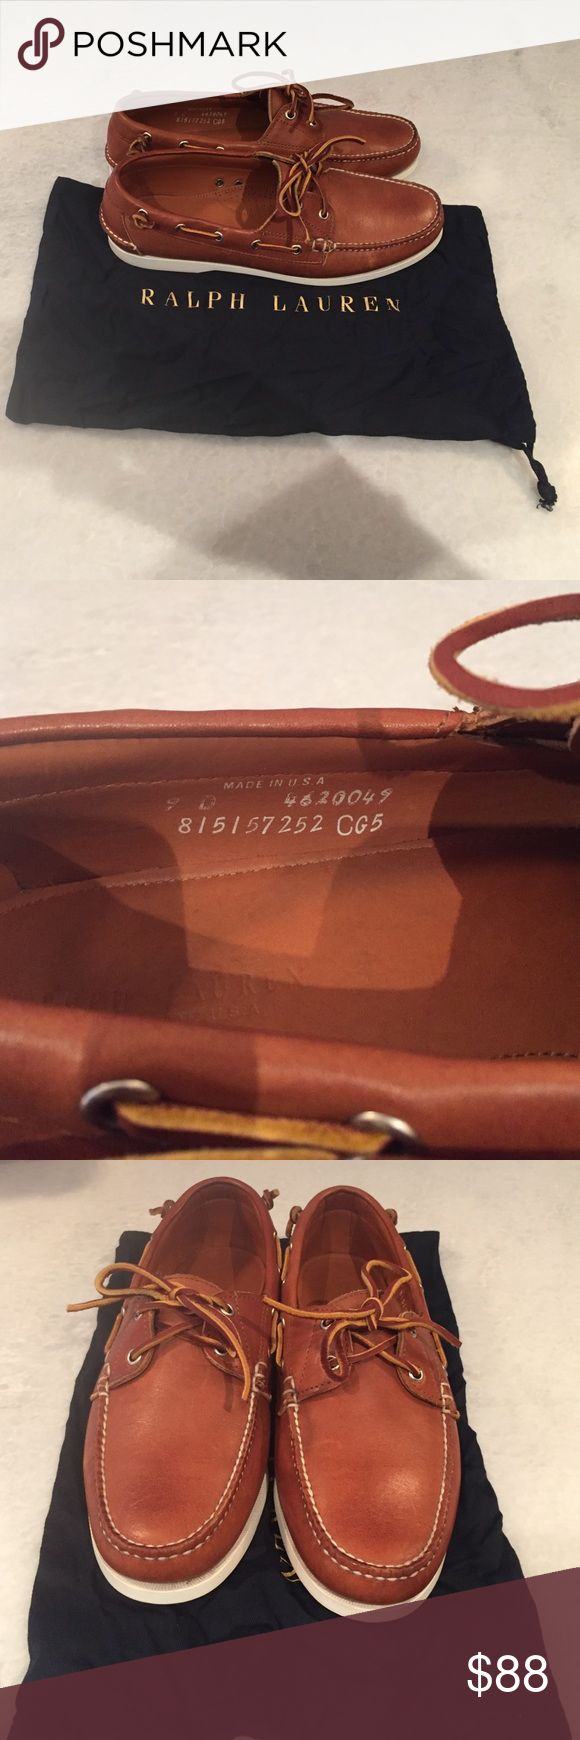 Ralph Lauren Laced Boat Shoe Ralph Lauren Camel Brown Boat Shoe. Worn once basically brand new. High Quality Leather with dust bags Ralph Lauren Shoes Boat Shoes